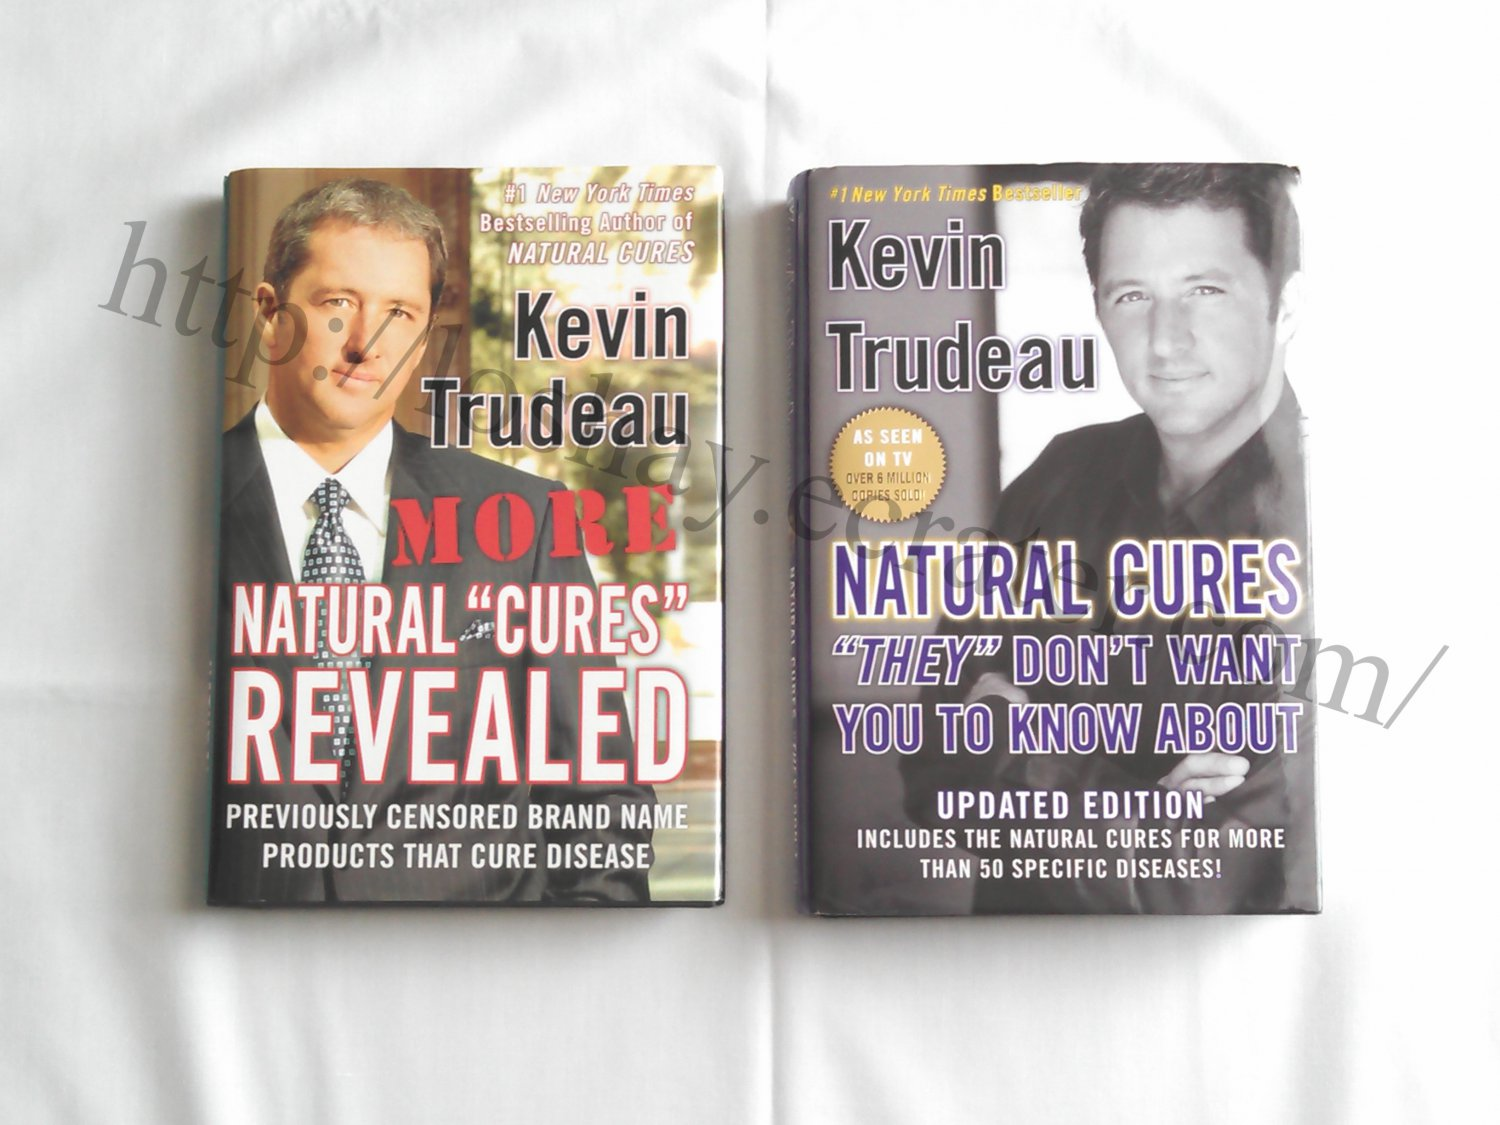 Lot 2 Kevin Trudeau Natural Secret Disease Cures Revealed Don't Want You To Know NY Bestsellers